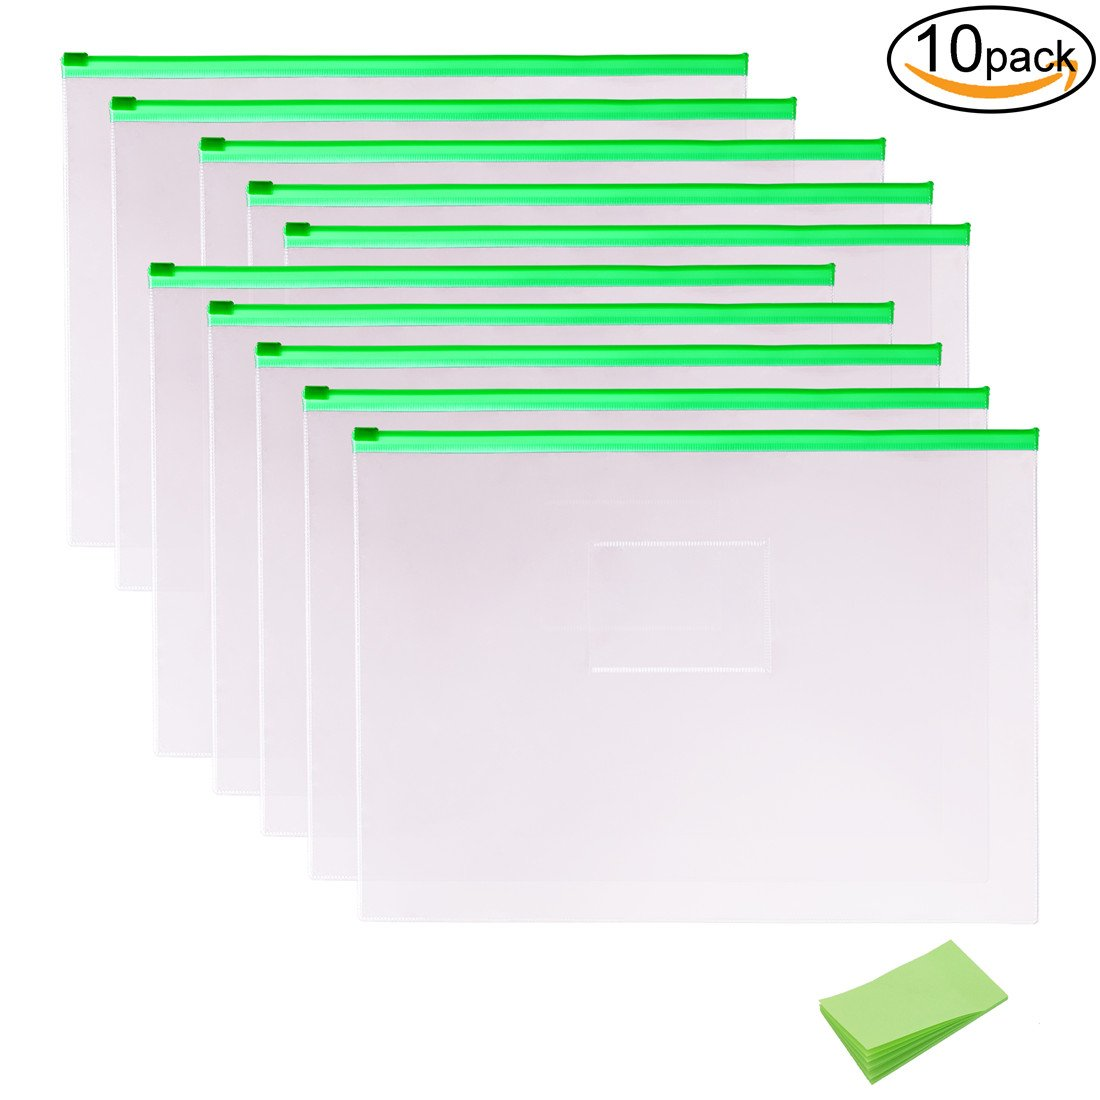 10 Pack Plastic Clear Poly Envelope Folders with Self-Stick Notes, A4 Size, Green Zipper by V-story